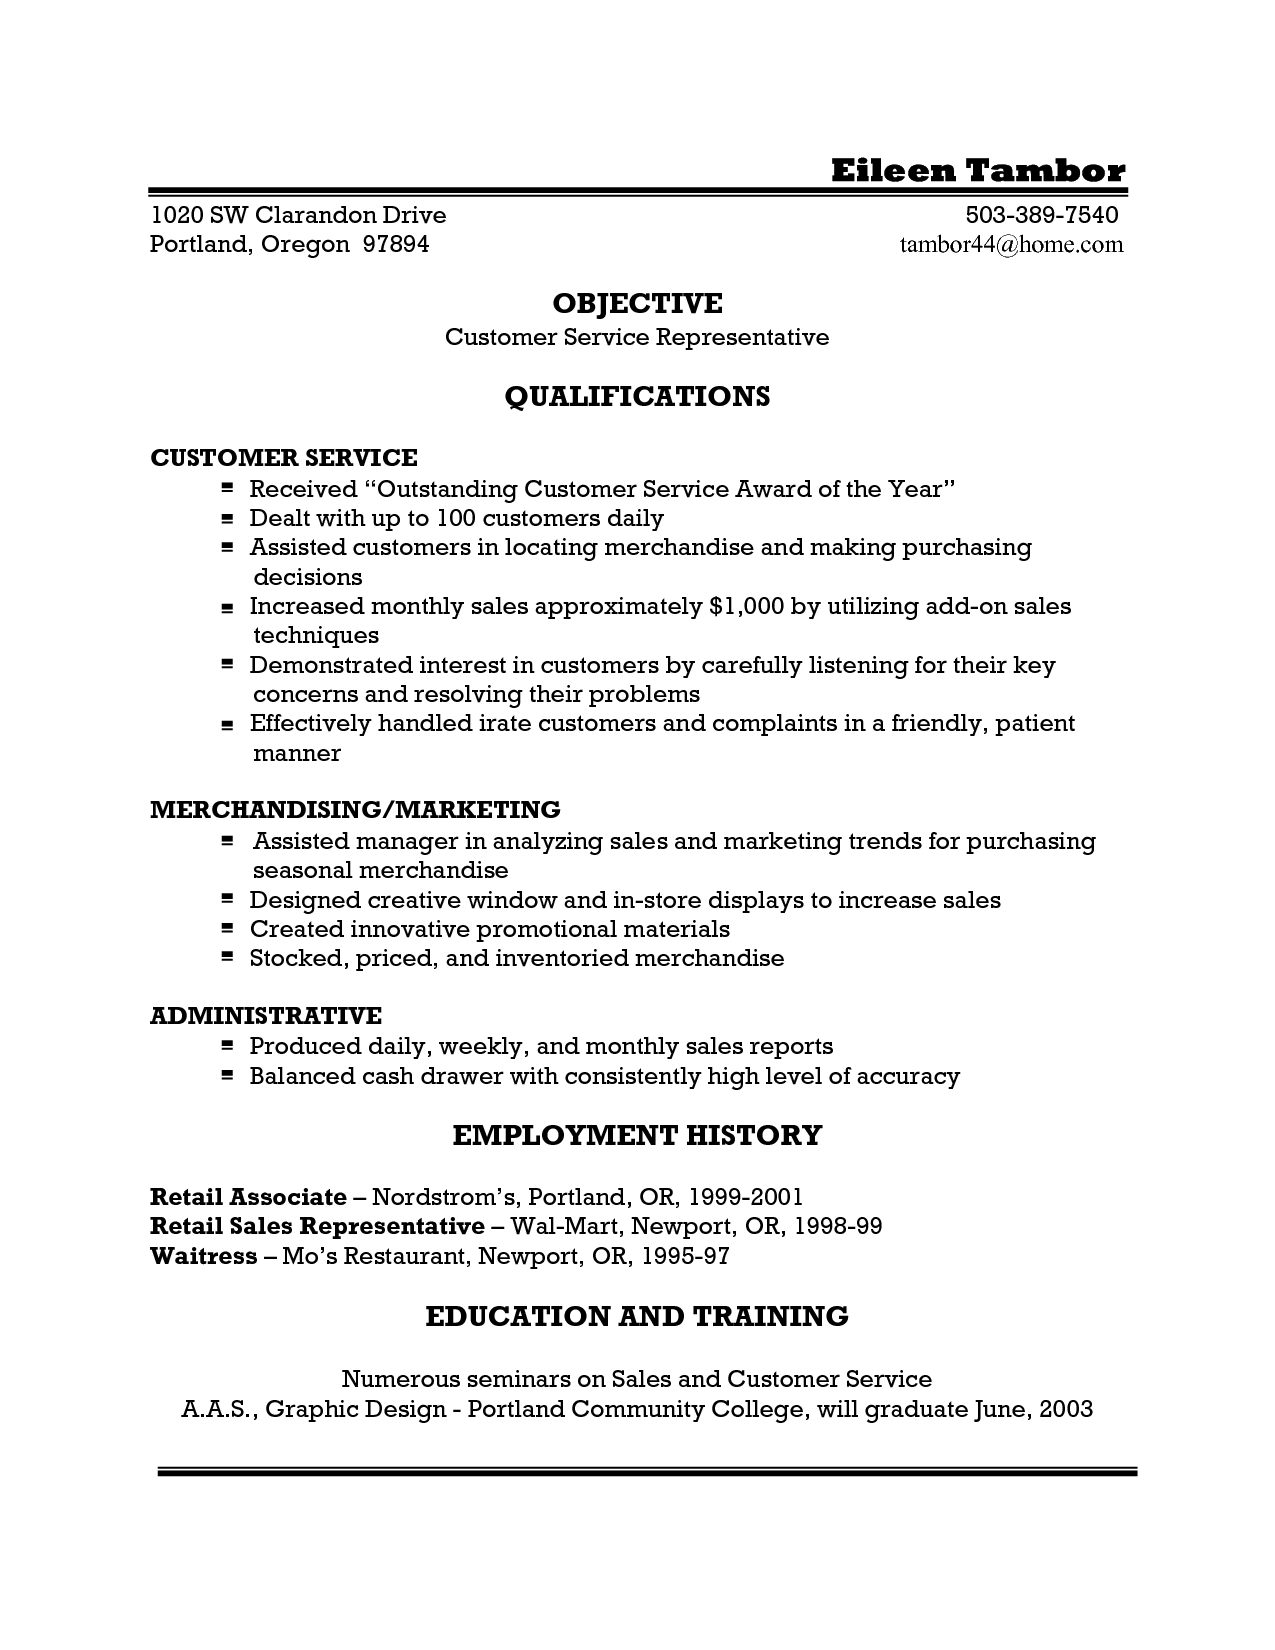 Resume Employment History Waitress Resume Example Template For Doc Server Samples Jpc Job